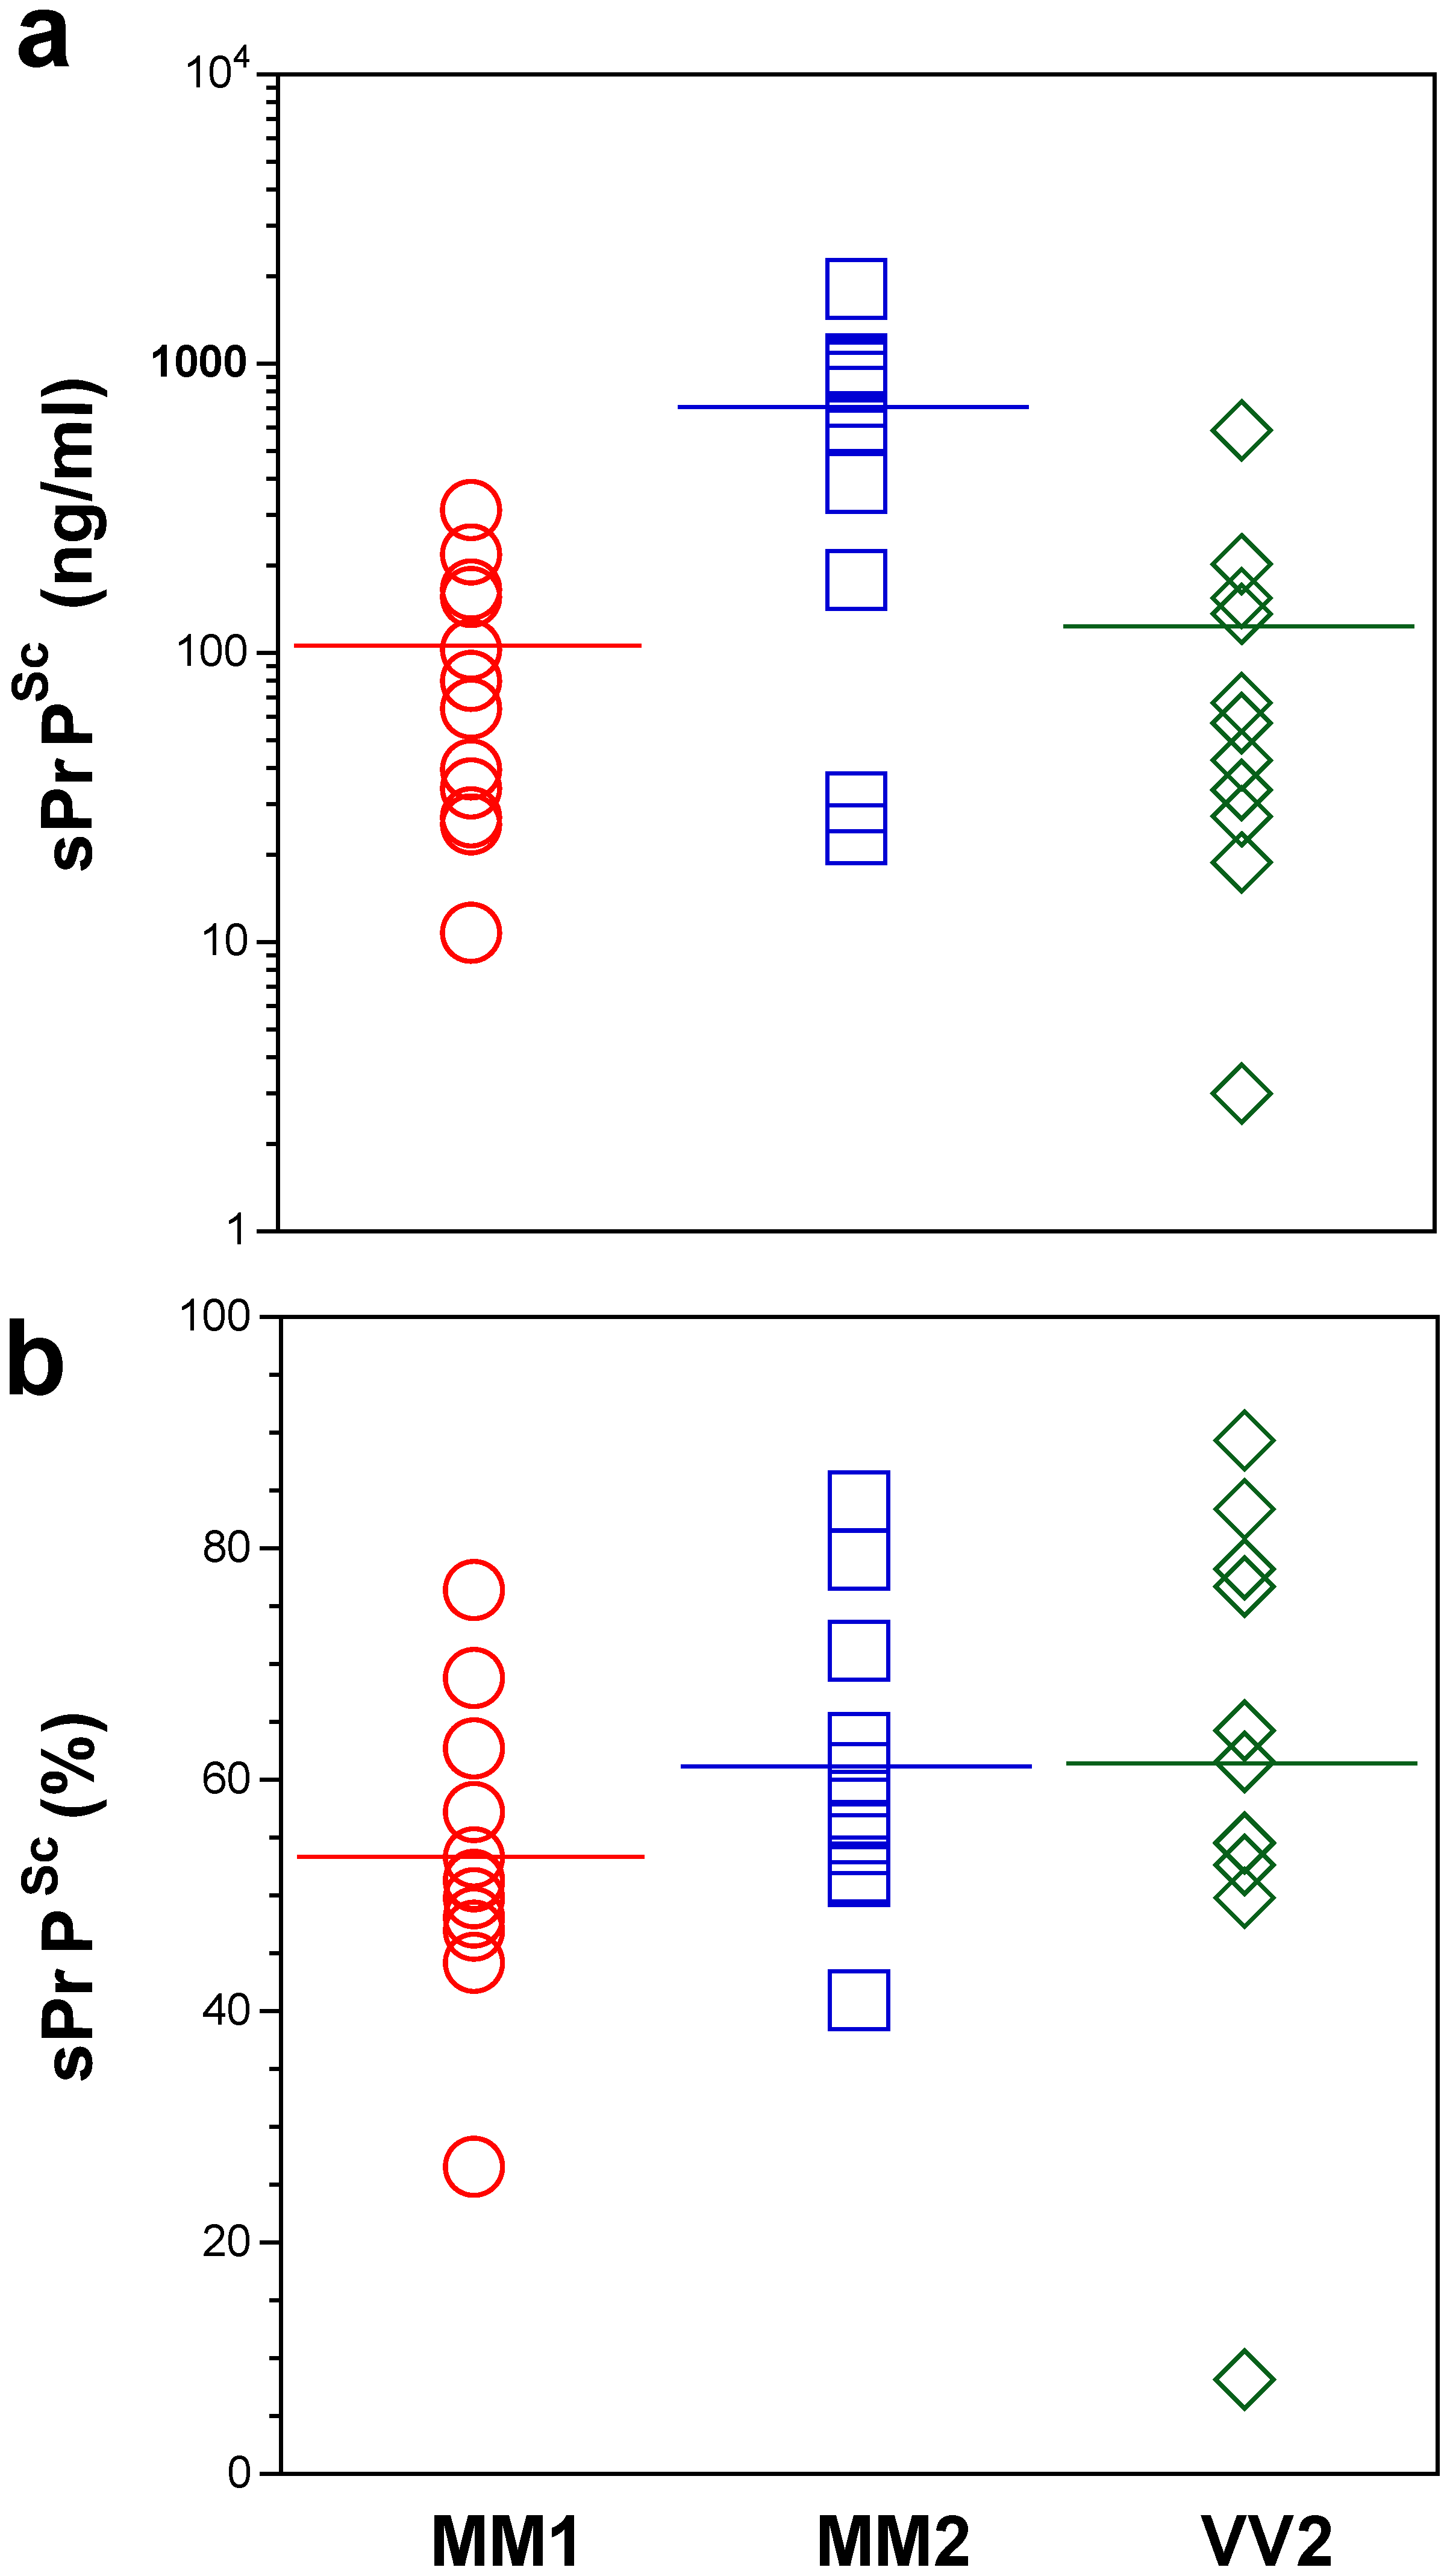 Concentration of sPrP<sup>Sc</sup> in frontal cortex of sCJD patients. Absolute (a) and relative (b) concentrations of sPrP<sup>Sc</sup> in frontal cortex of sCJD cases.